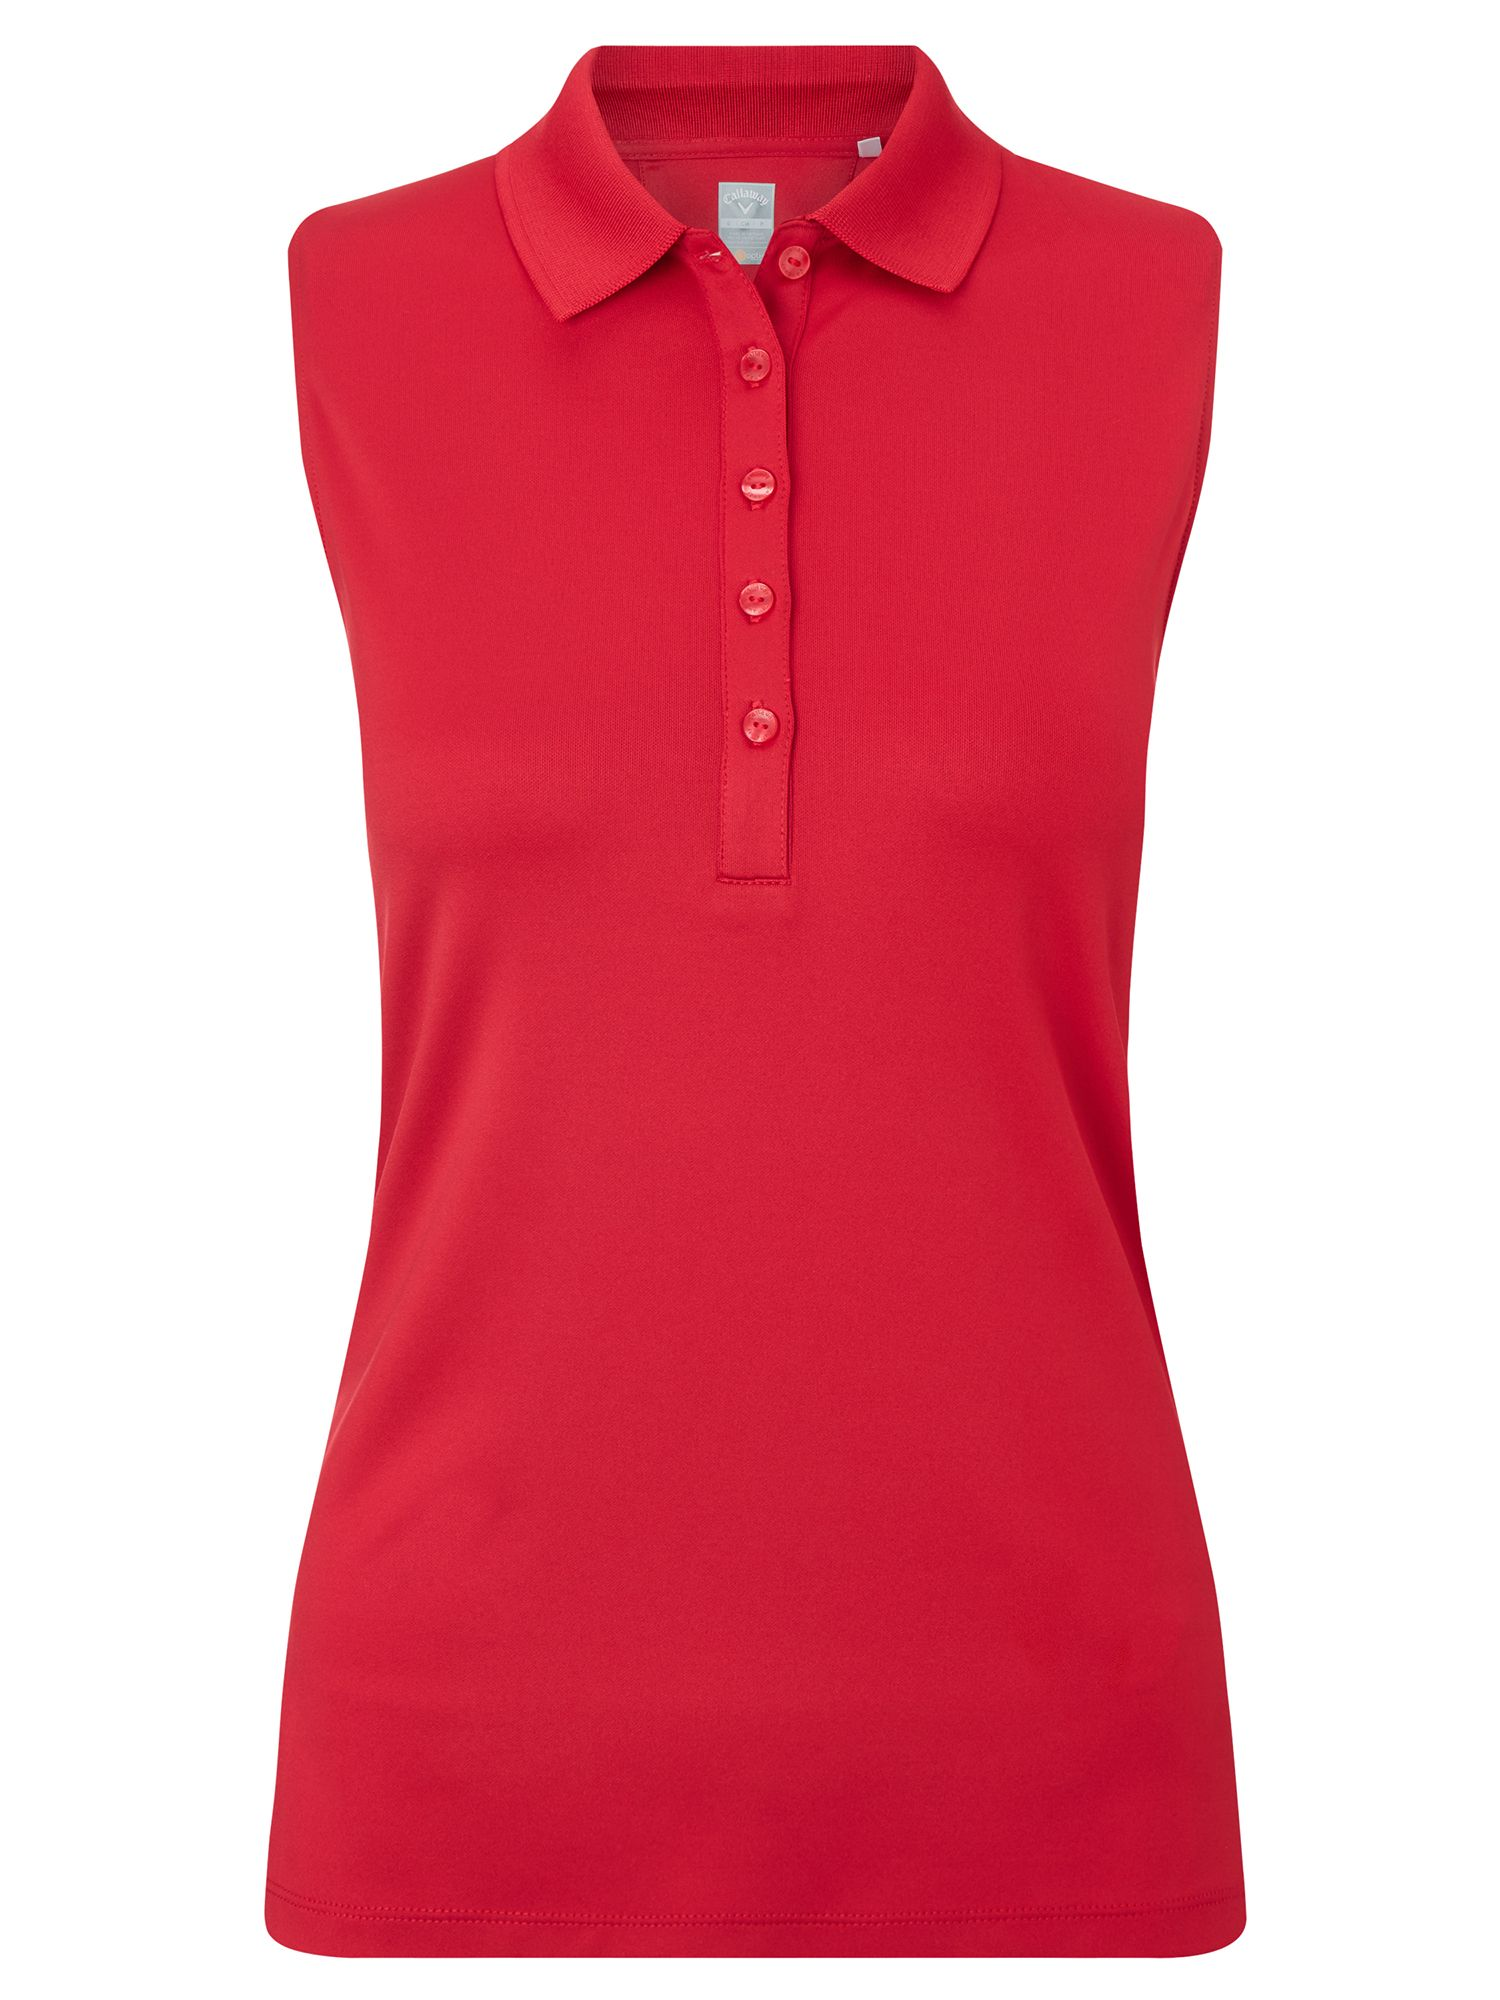 Callaway Chev Solid Sleeveless Polo, Red